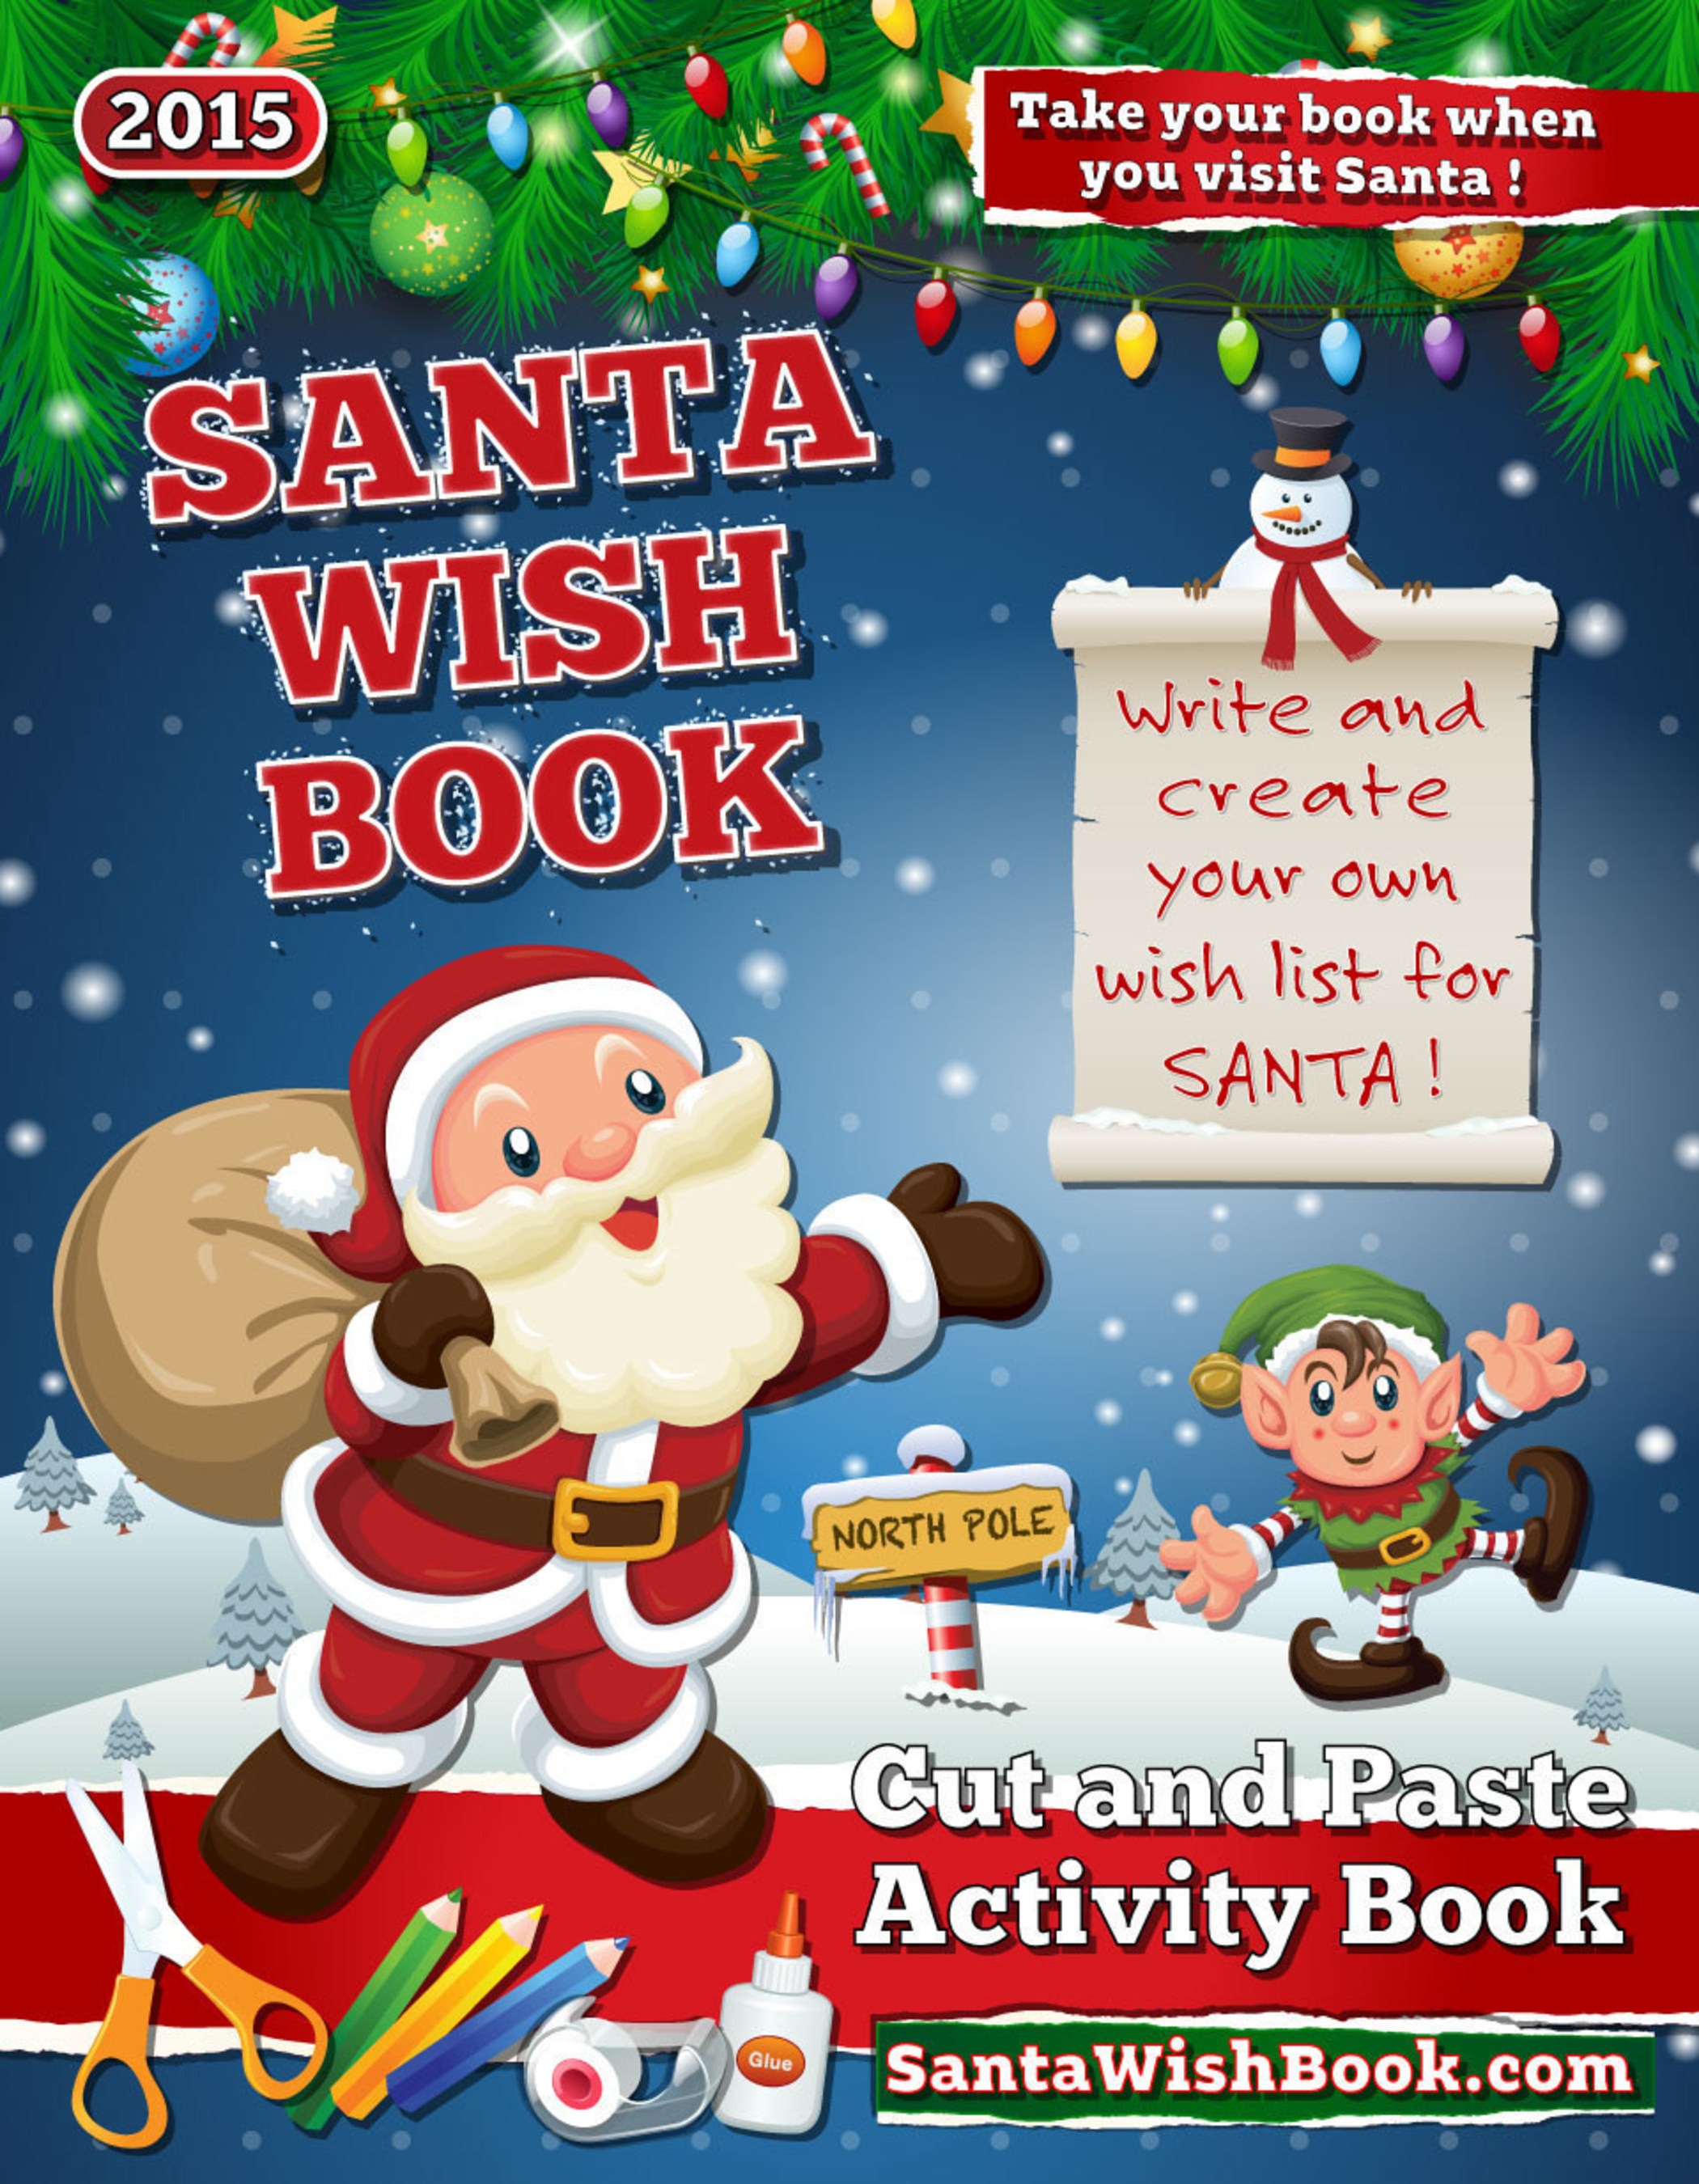 Make Holiday Memories With a Personalized, Educational Santa Wish Book